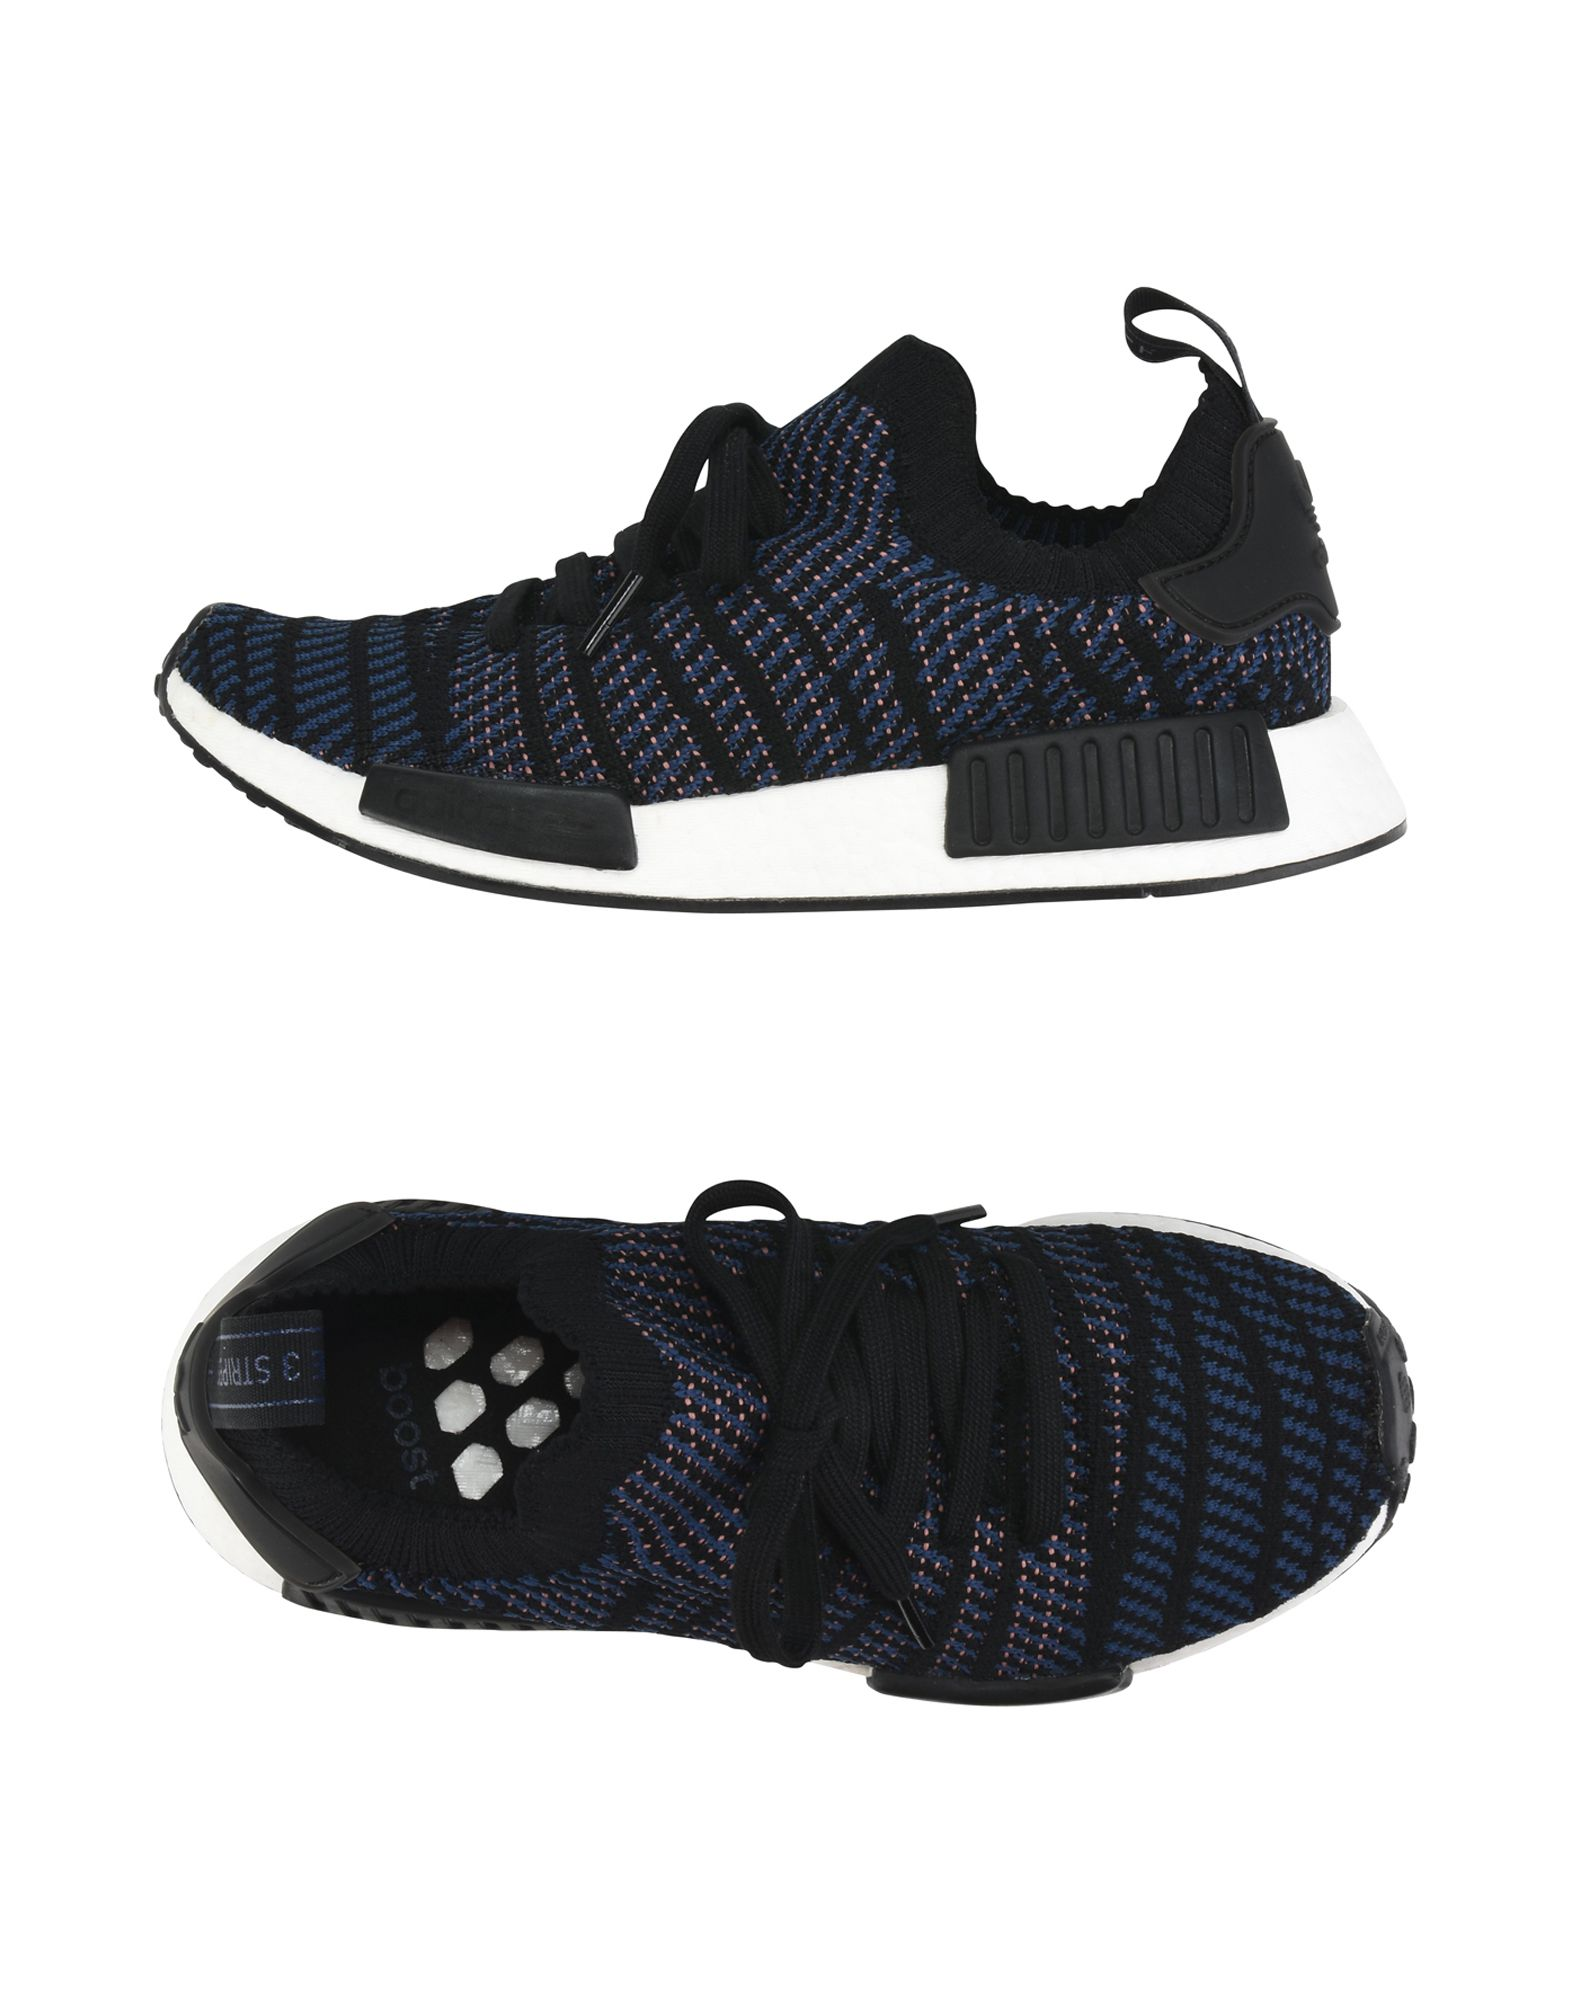 Adidas Originals Nmd_R1 Stlt Pk Women W - Sneakers - Women Pk Adidas Originals Sneakers online on  United Kingdom - 11435346EK 2dc3b2